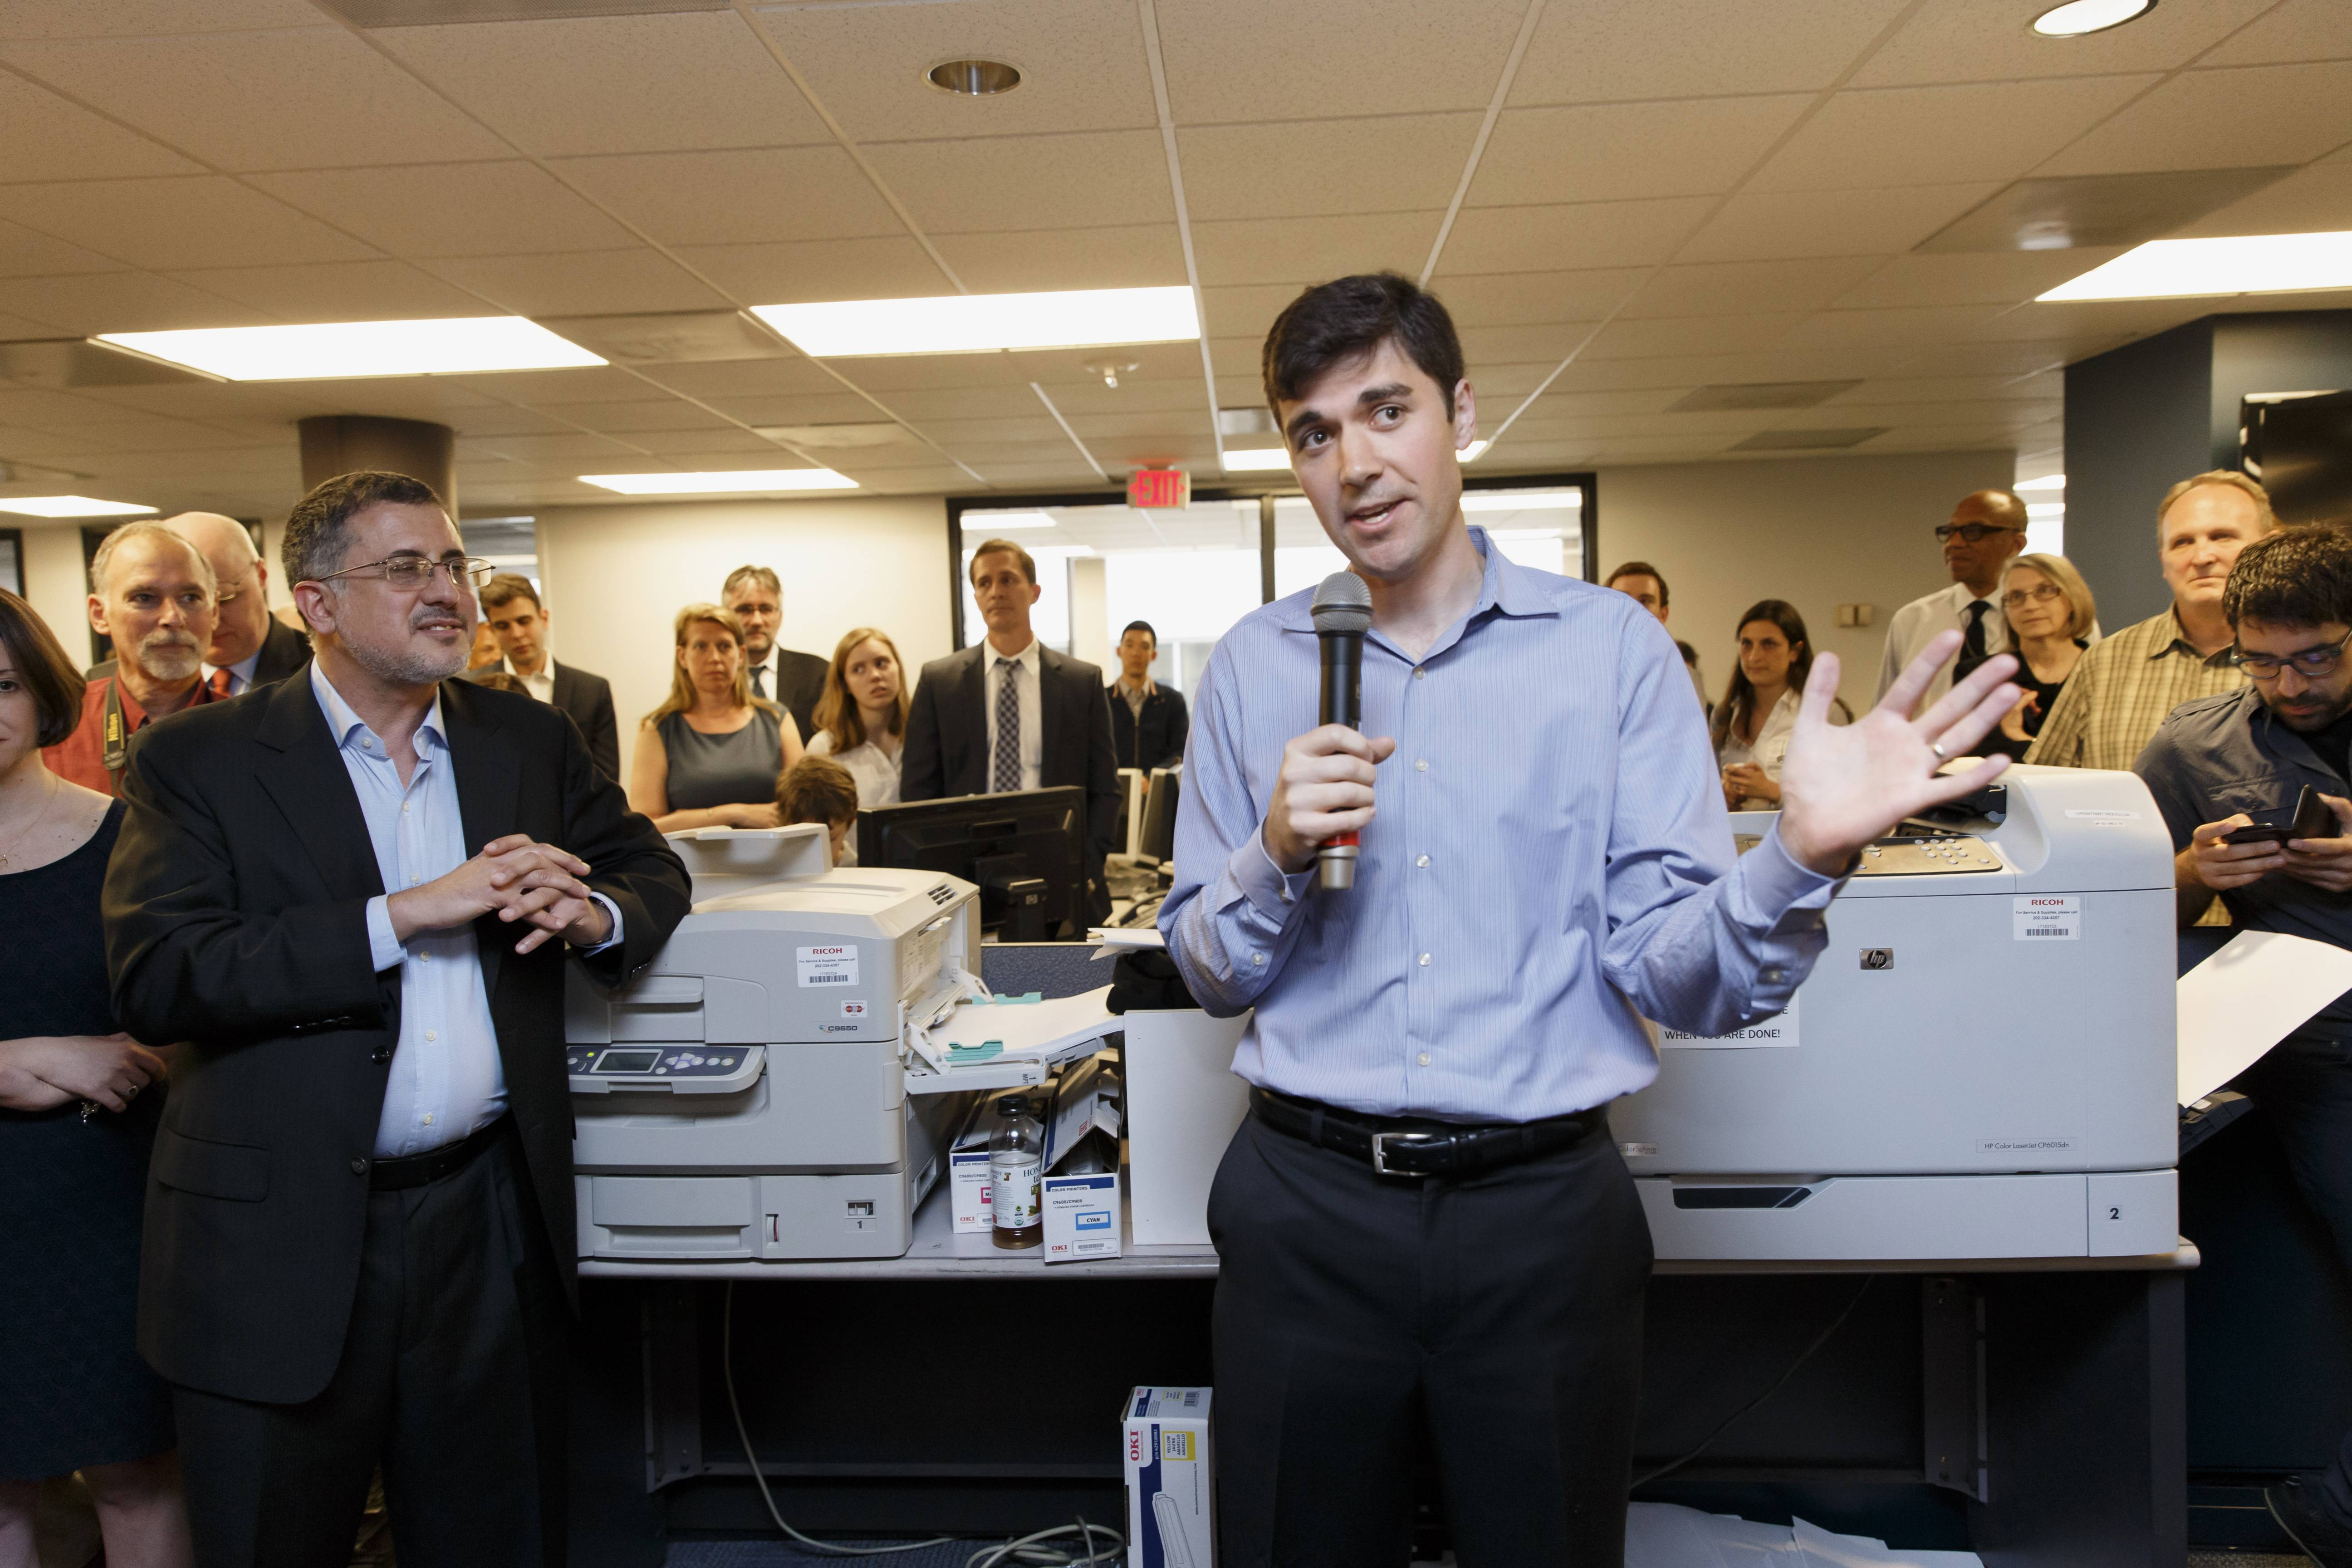 Washington Post writer Eli Saslow, center, speaks to his newsroom colleagues Monday after the announcement that he was awarded the Pulitzer Prize for Explanatory Reporting for his reporting on the prevalence of food stamps in post-recession America.